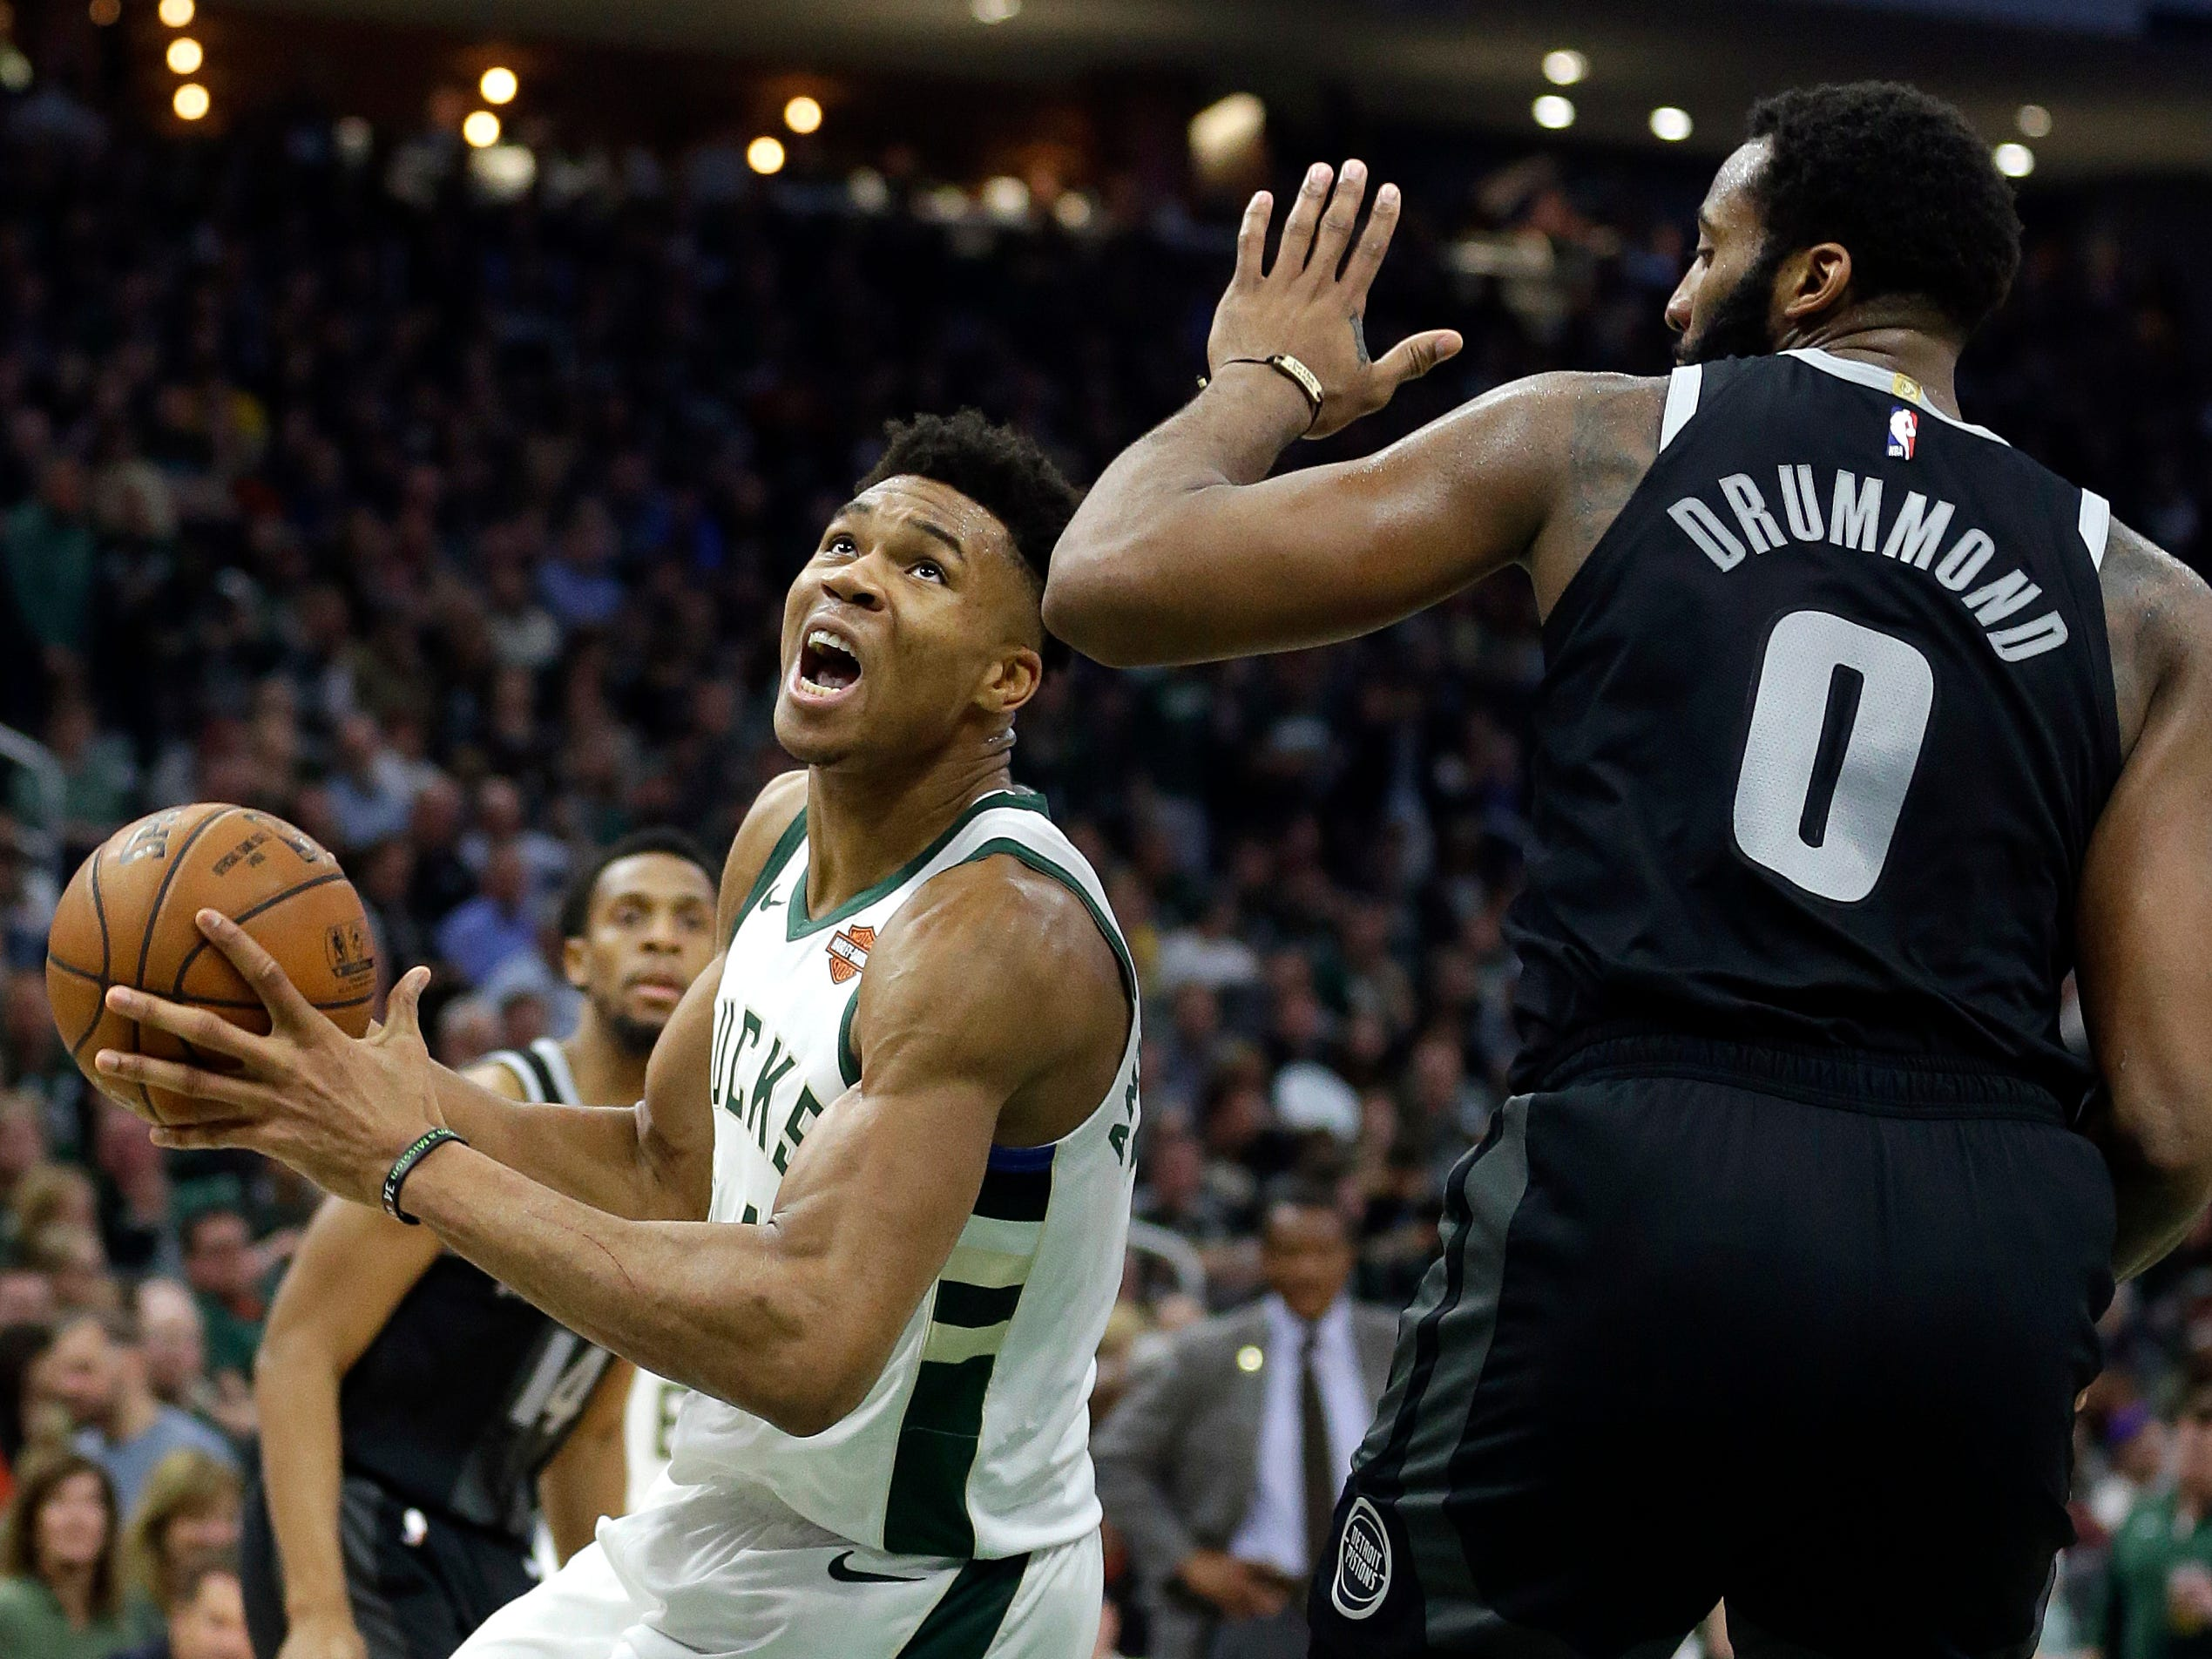 Milwaukee Bucks' Giannis Antetokounmpo drives to the basket against Detroit Pistons' Andre Drummond during the second half.